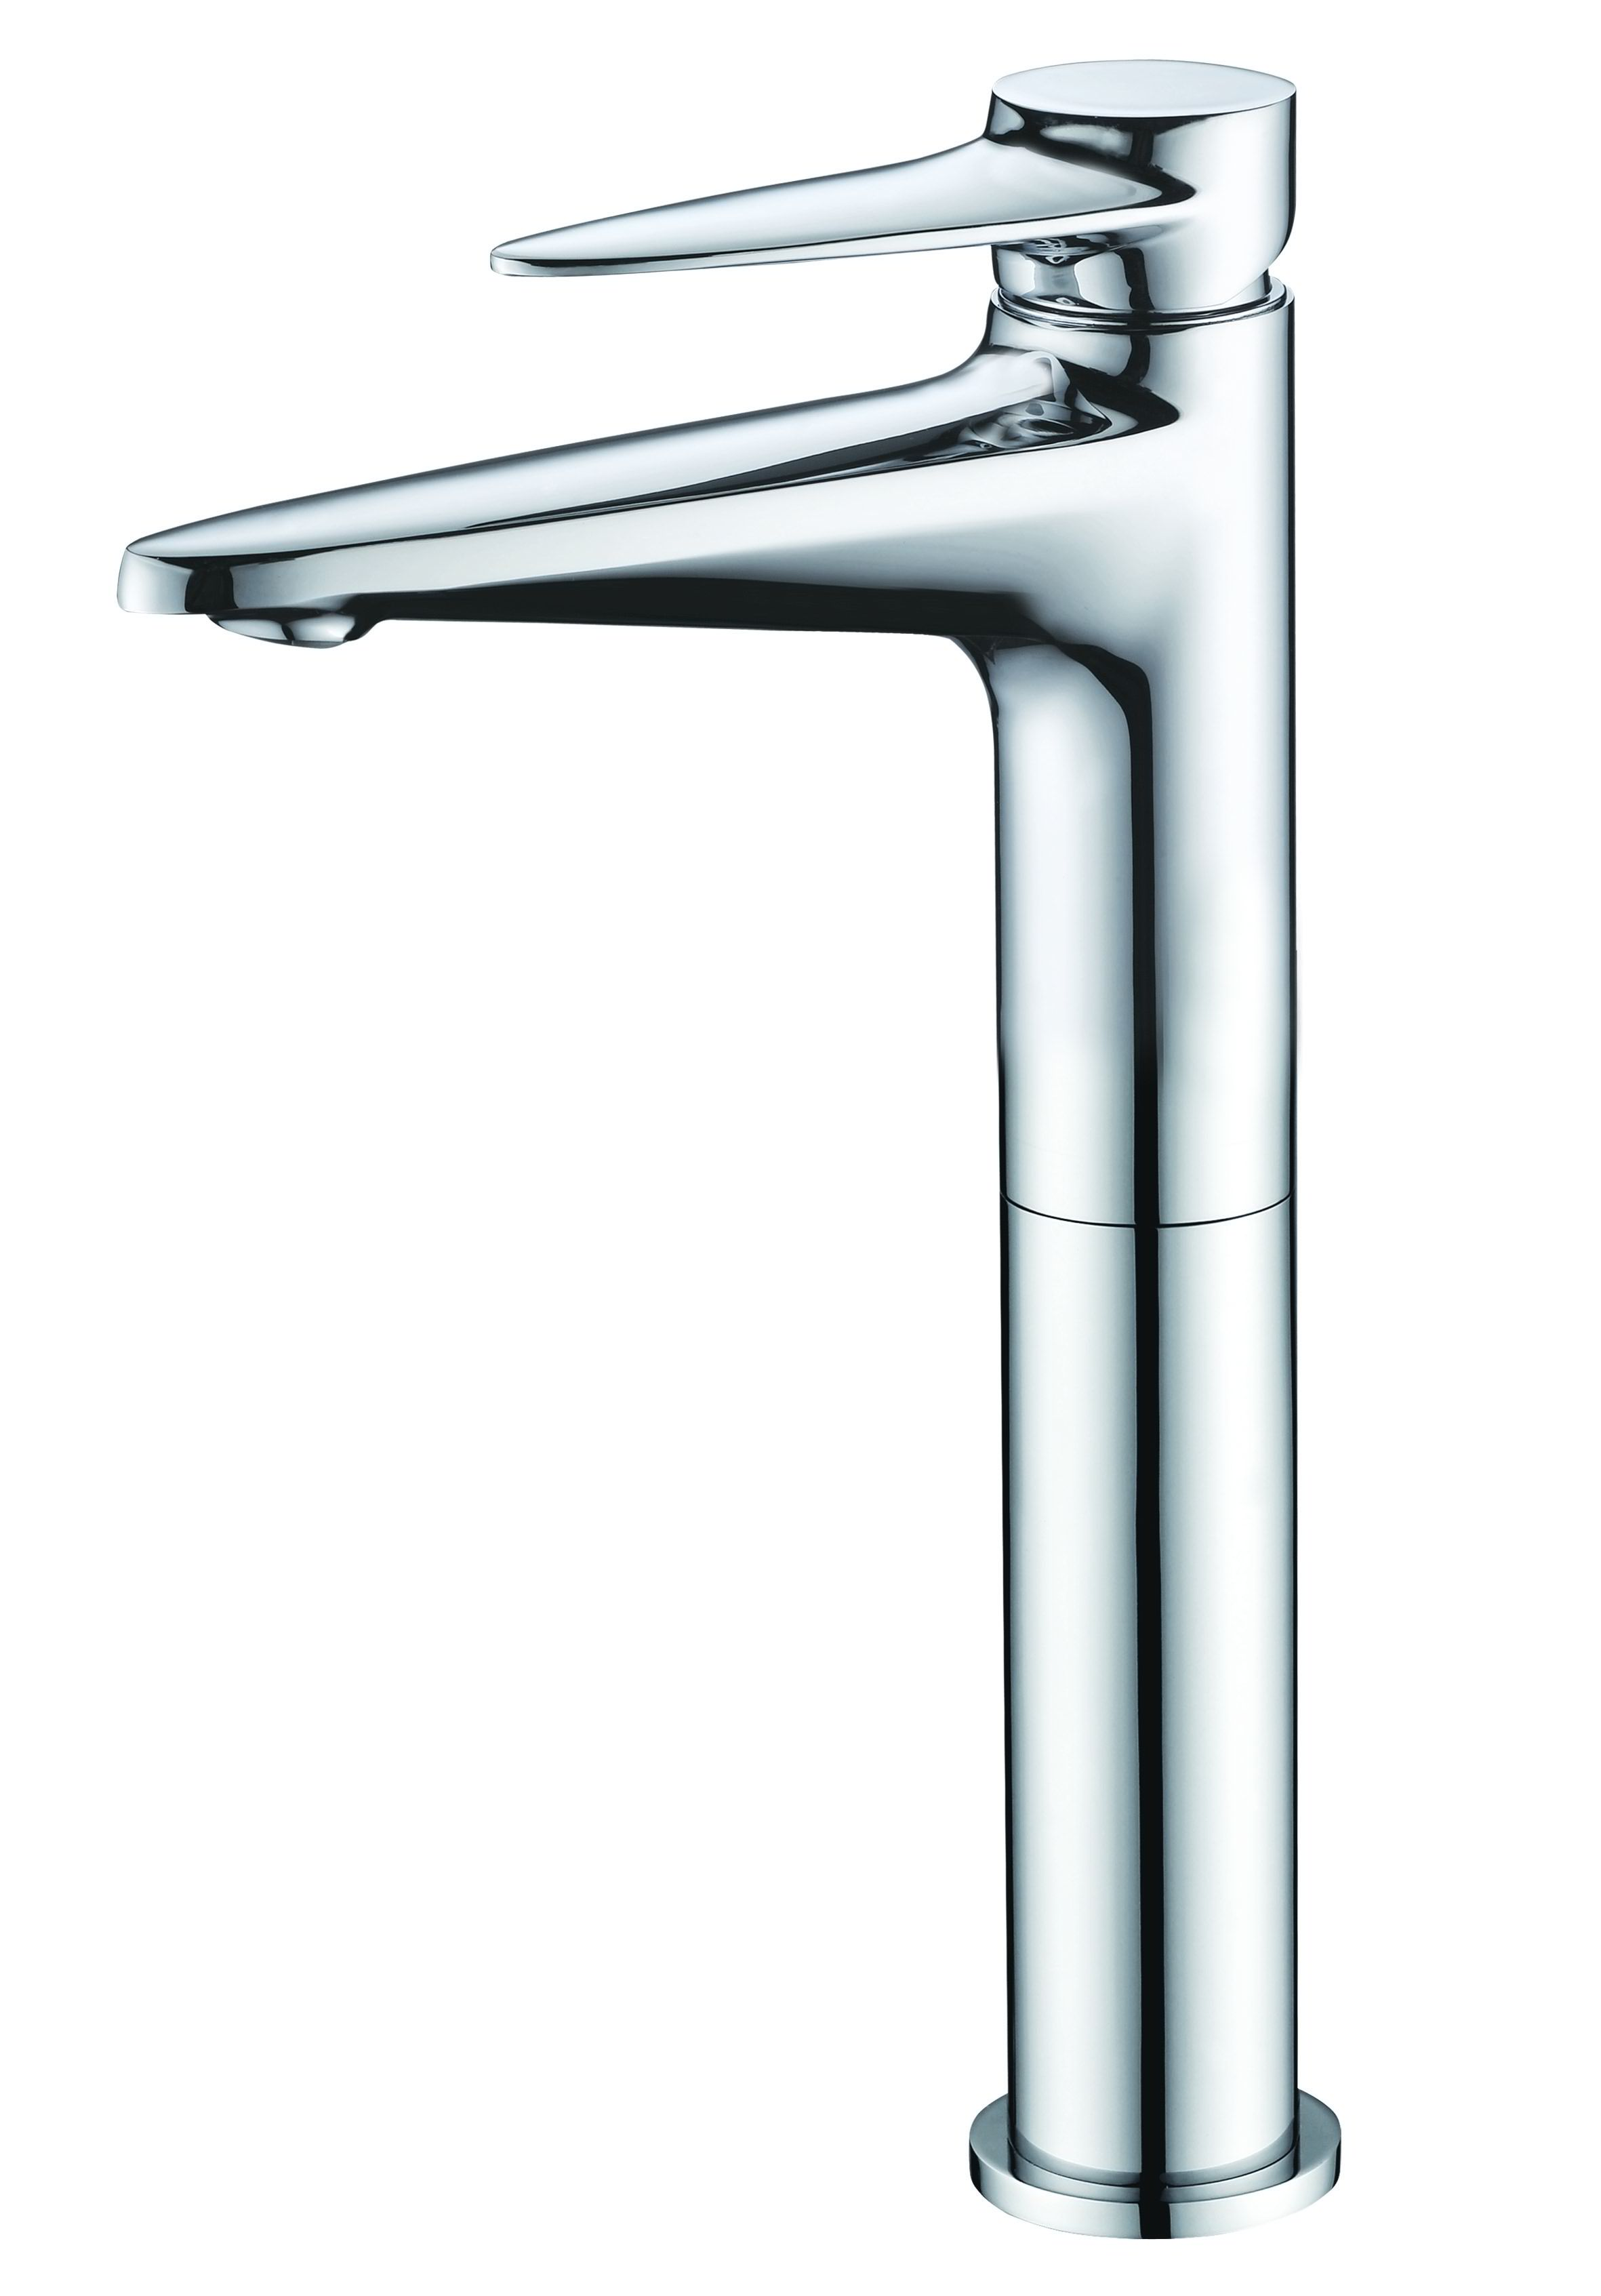 ALFI Brand AB1771 Brushed Nickel or Polished Chrome Tall Single Hole Bathroom Faucet